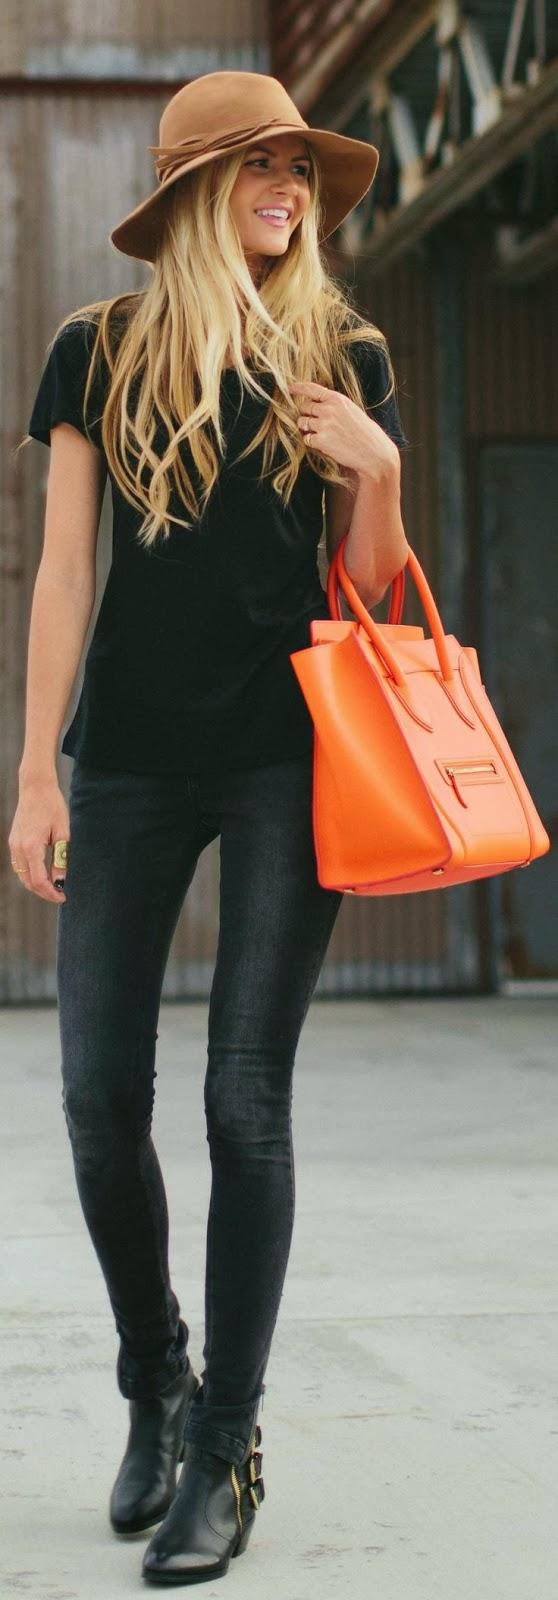 Black Dress With Orange Bag